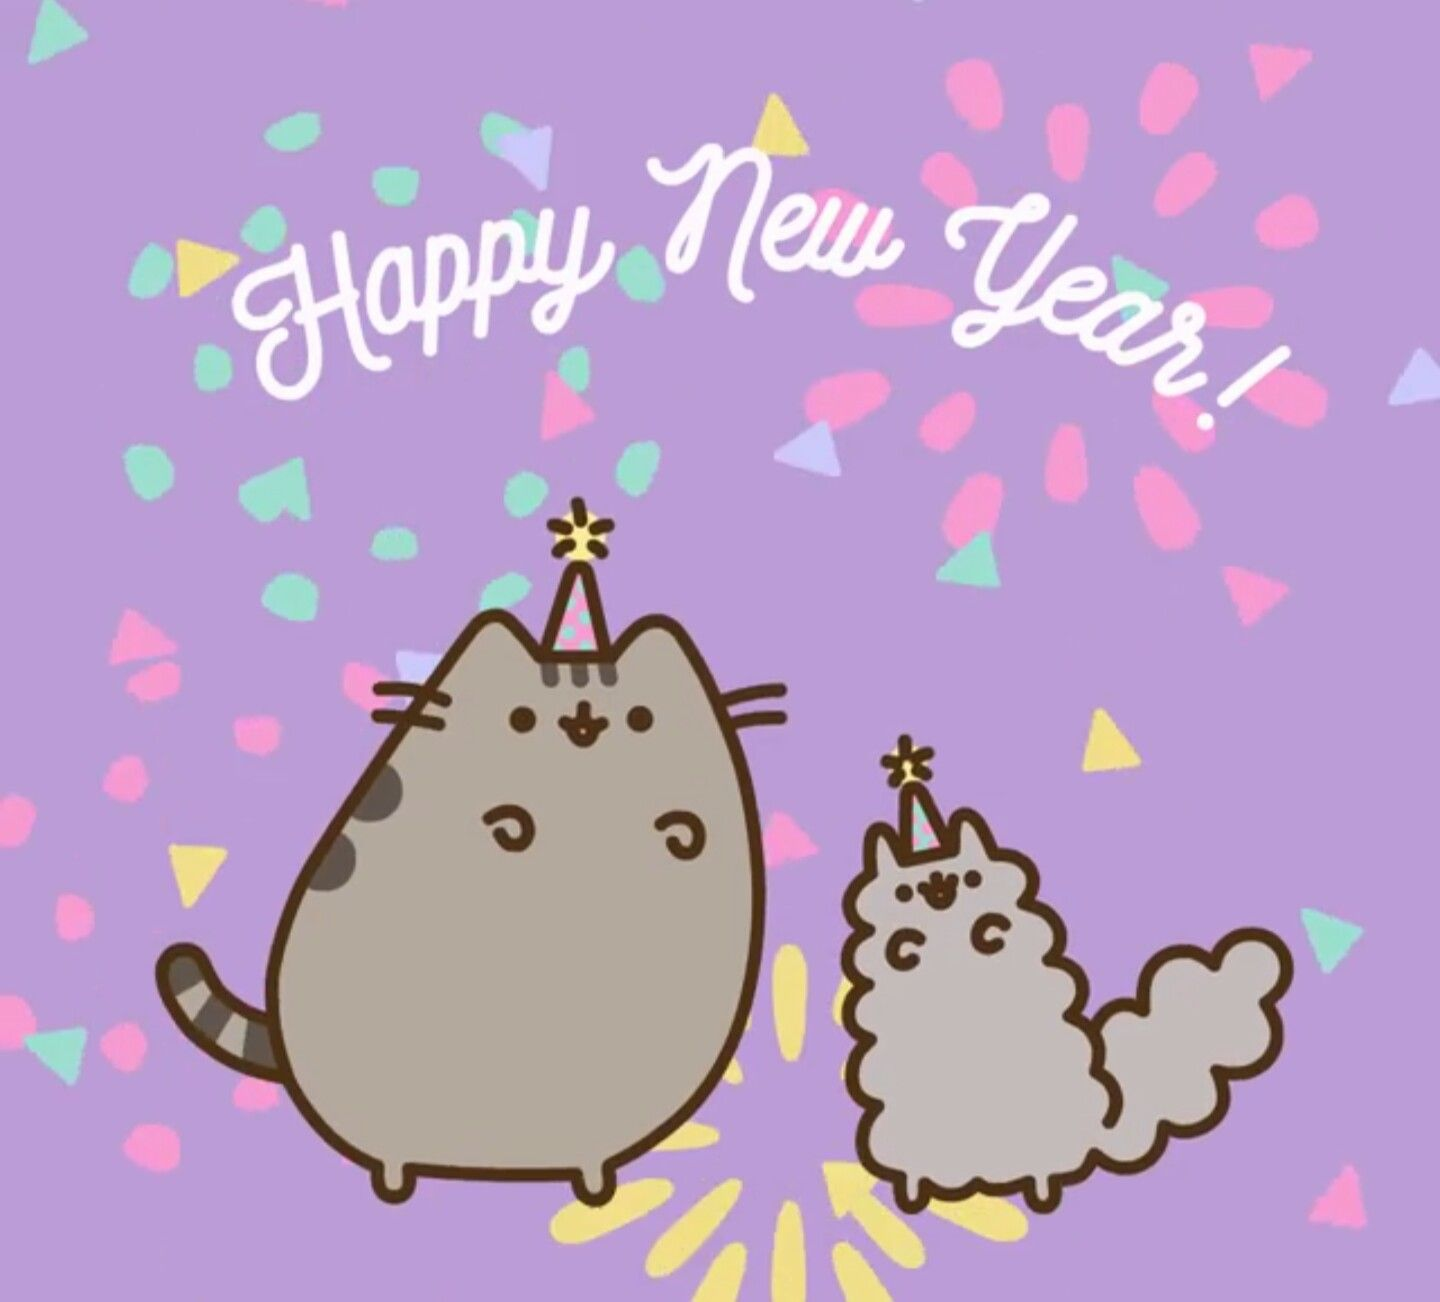 Pin by D.Doreen on Pusheen (With images) Pusheen, Happy